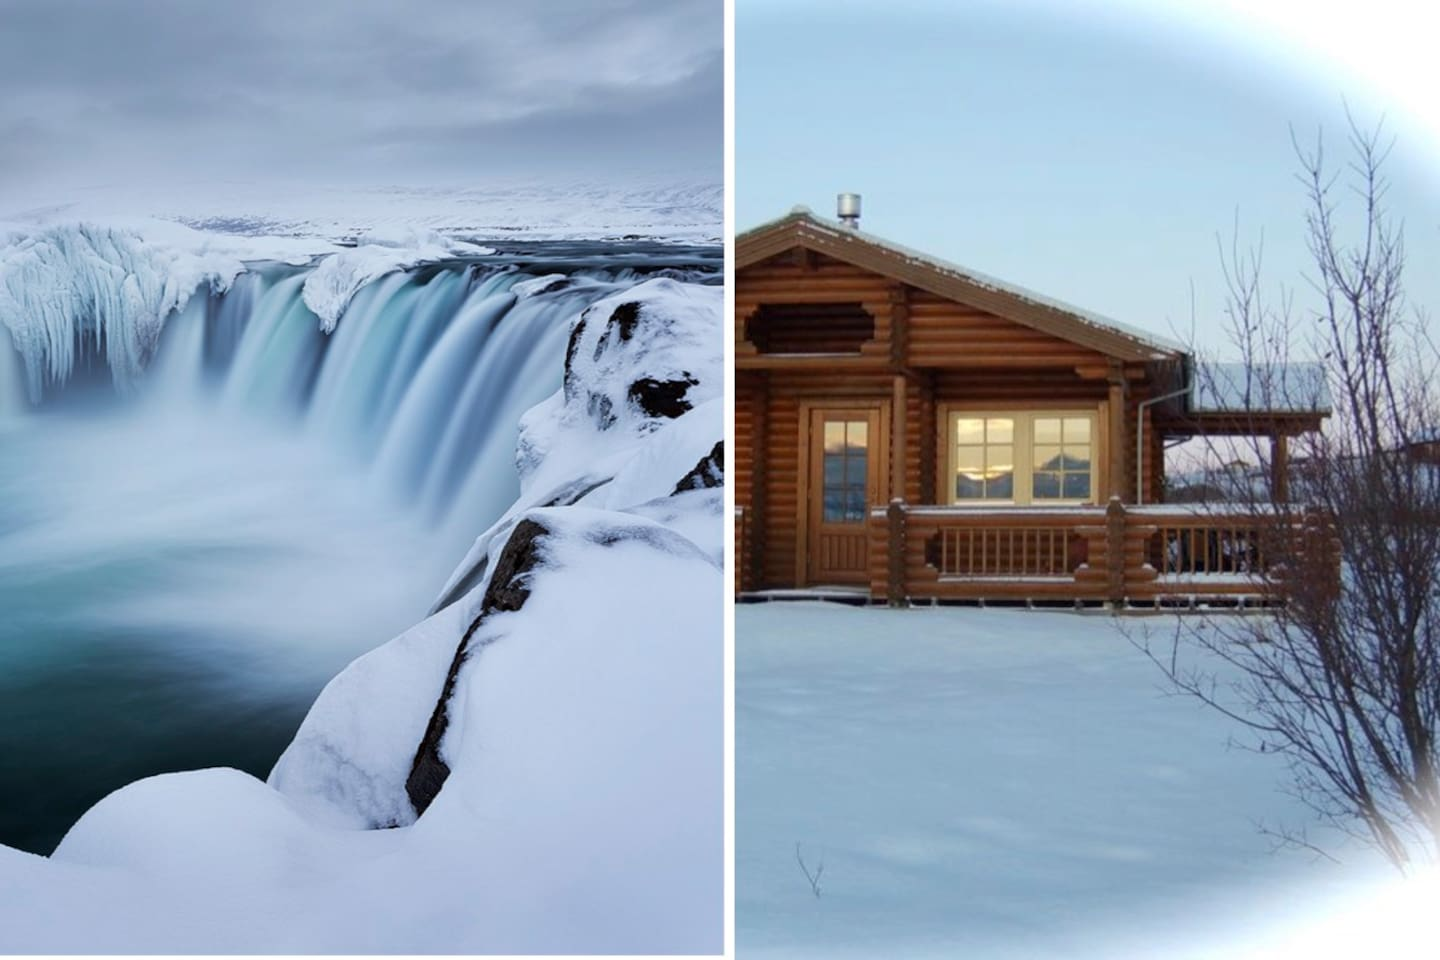 Sólstadir at Hvítá River is located In the Middle of the Golden Circle, close to several winter attractions!